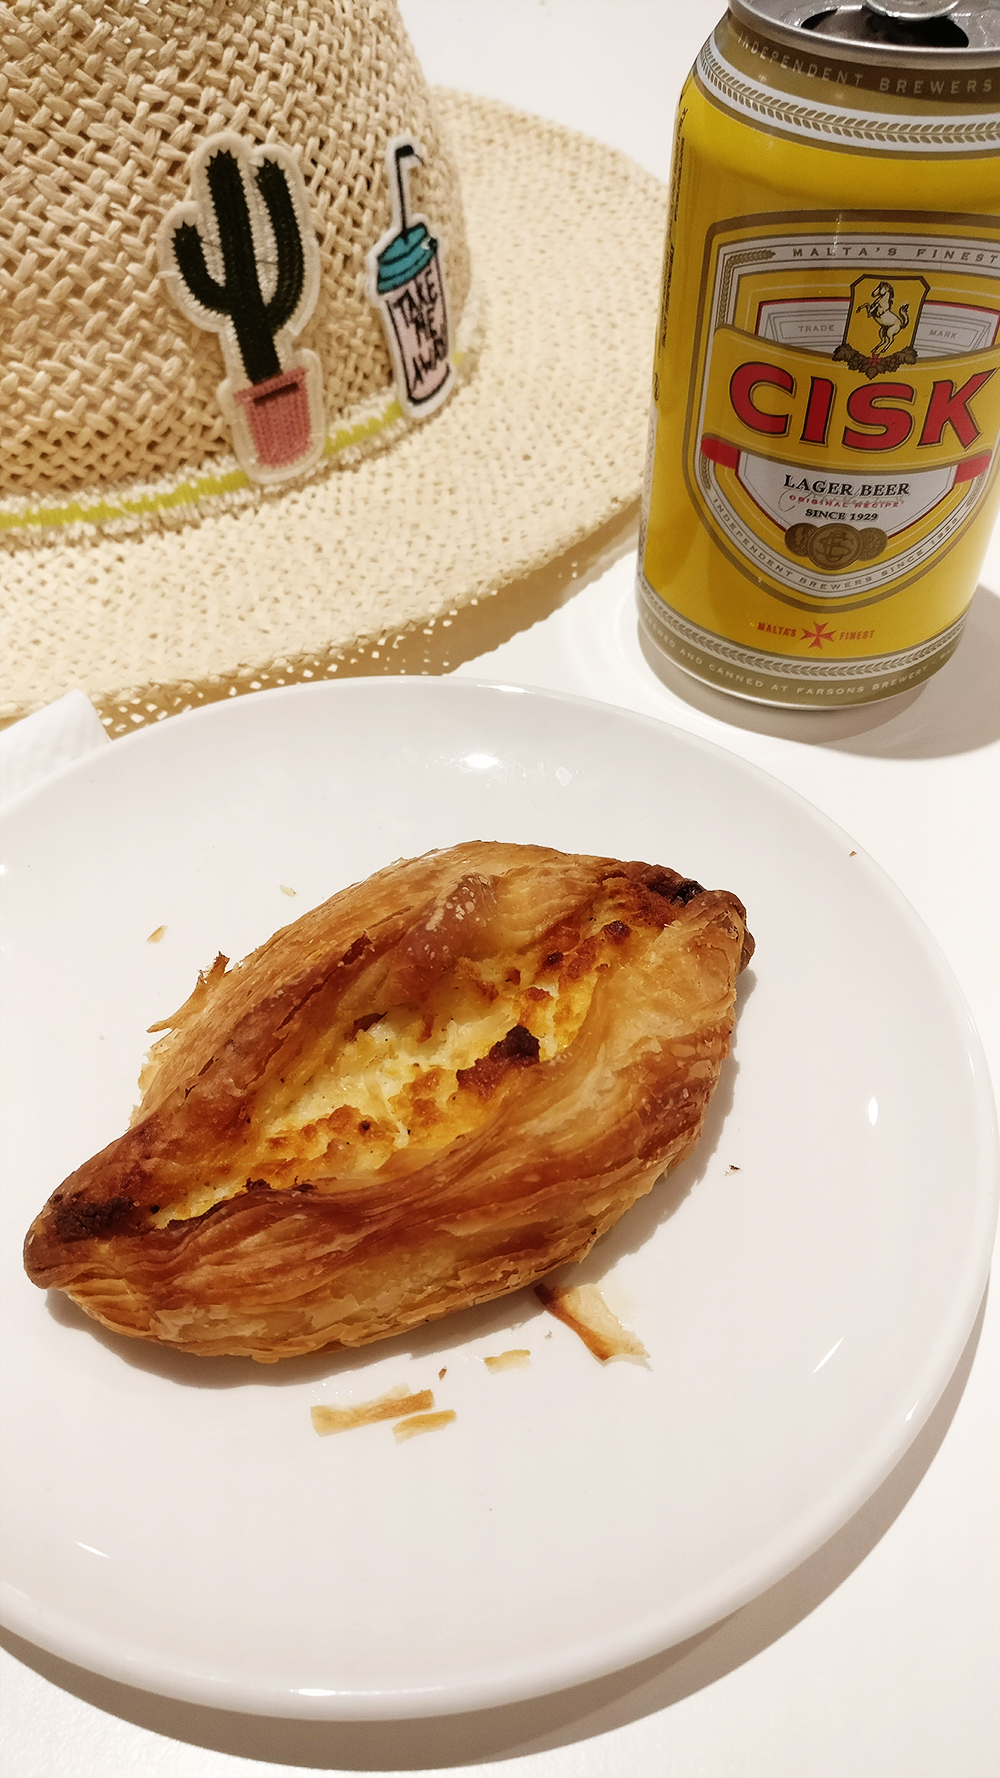 Relish, Pastizzi and Cisk - Drinking and eating in Malta